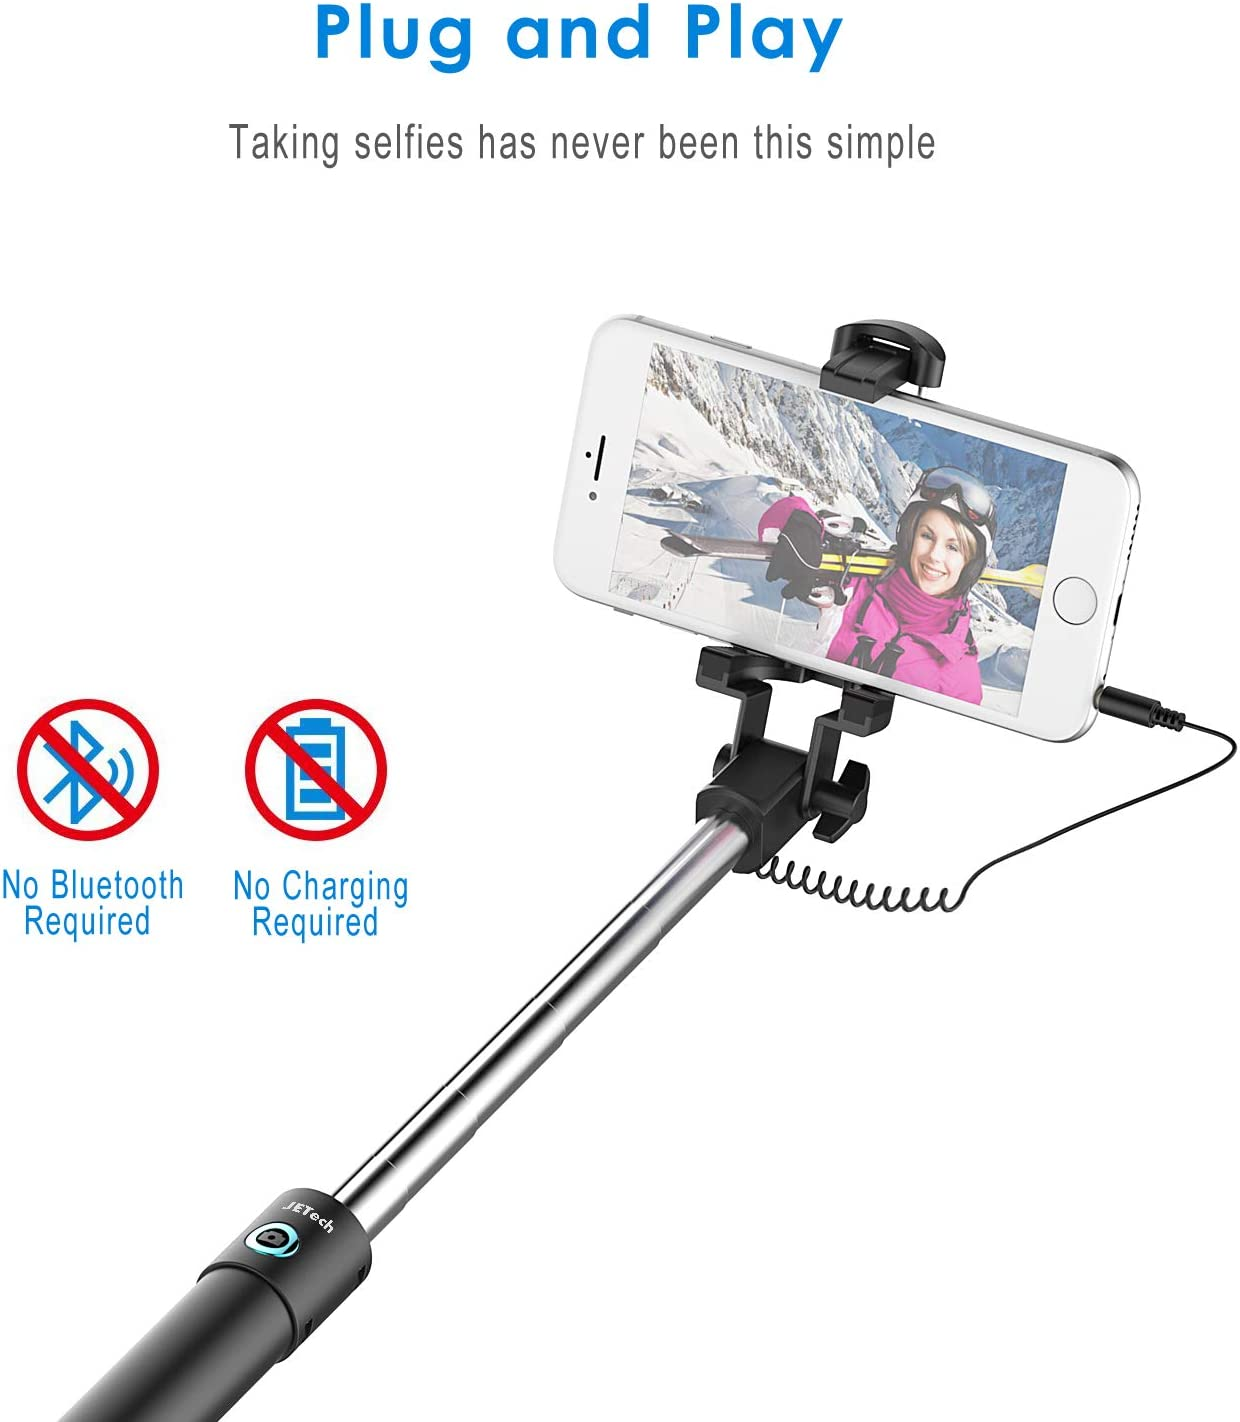 Easy to Carry Wgwioo Wired Cable Controlled Adjustable Selfie Stick